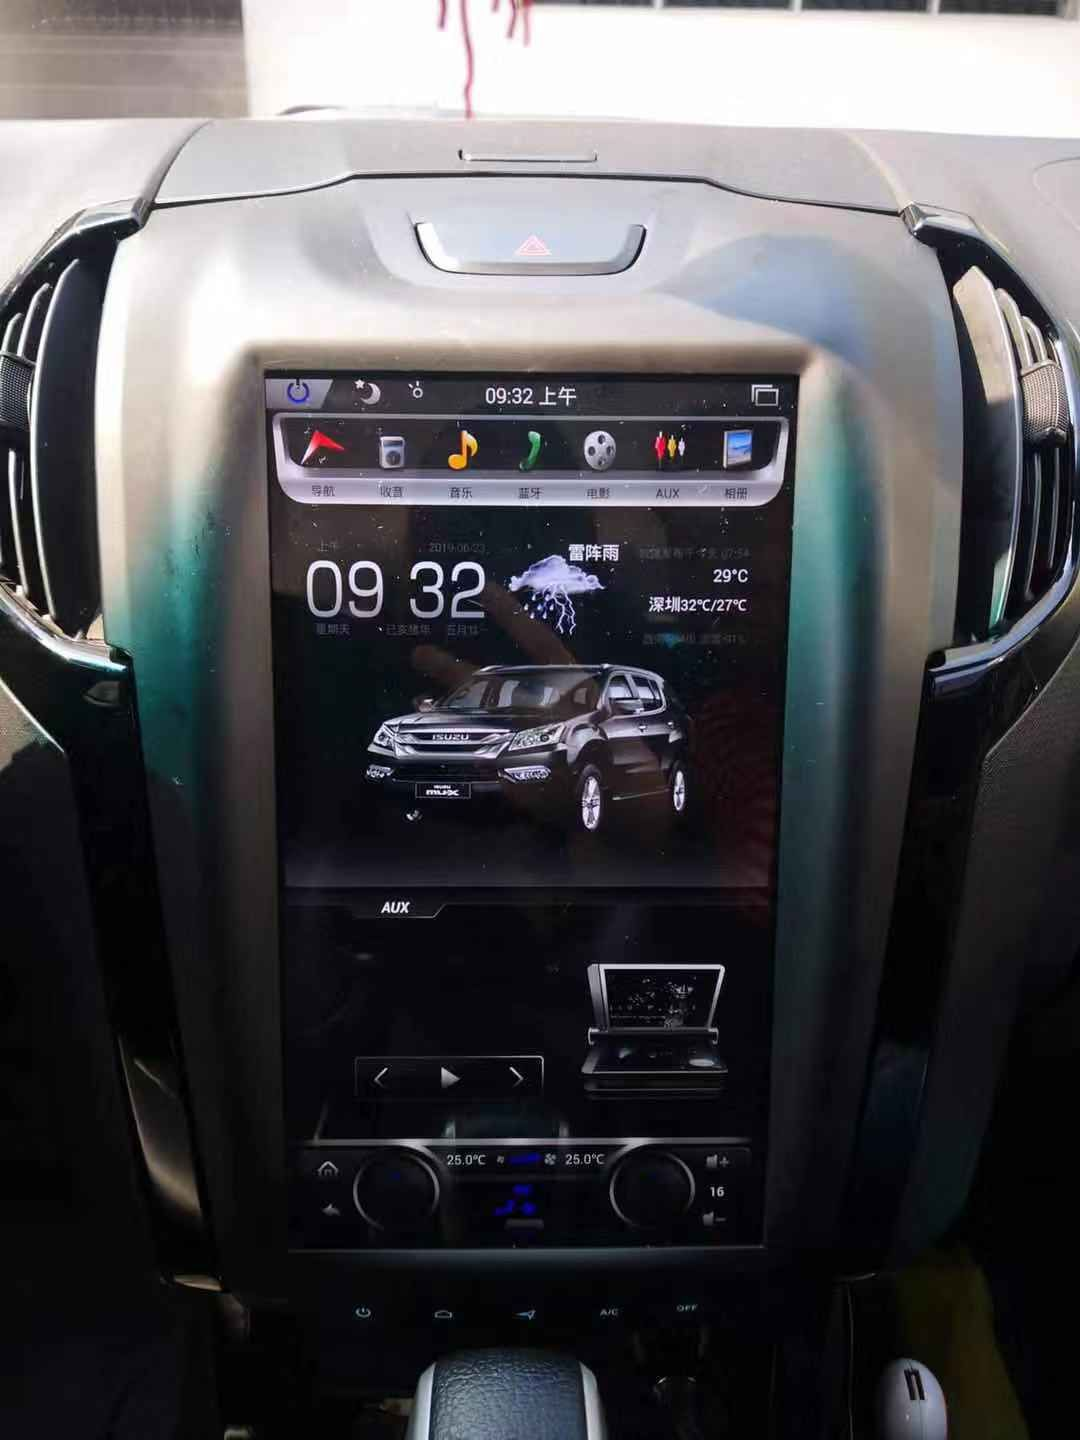 Pin By Navihua On Tesla Vertical Screen Car Dvd For Ford Tesla